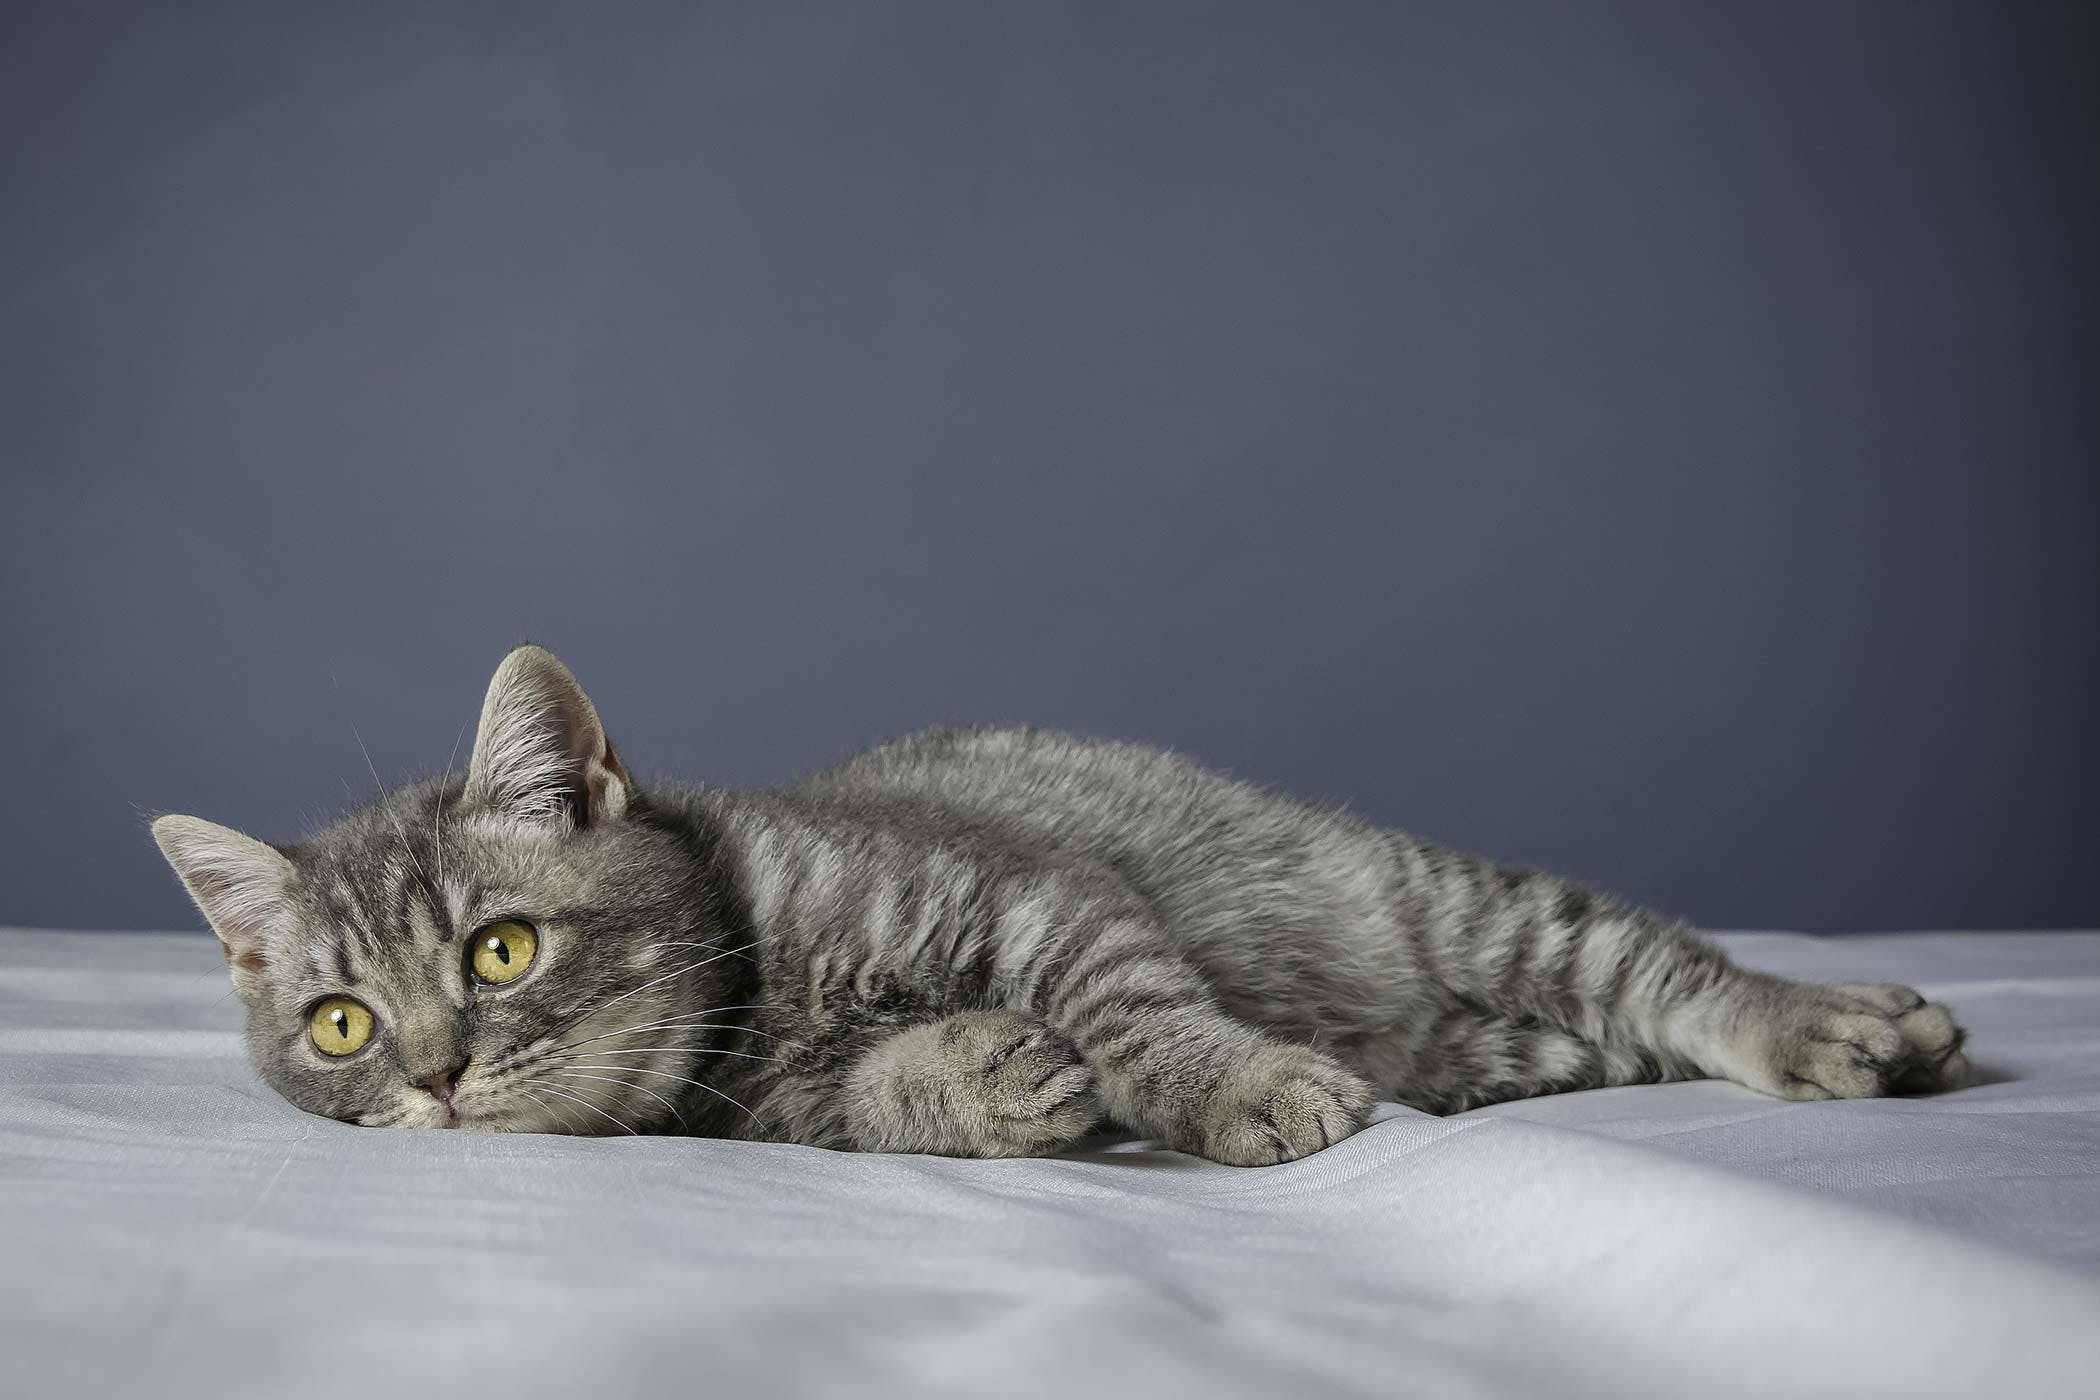 Toxoplasmosis in cats. Symptoms, treatment, prevention 75